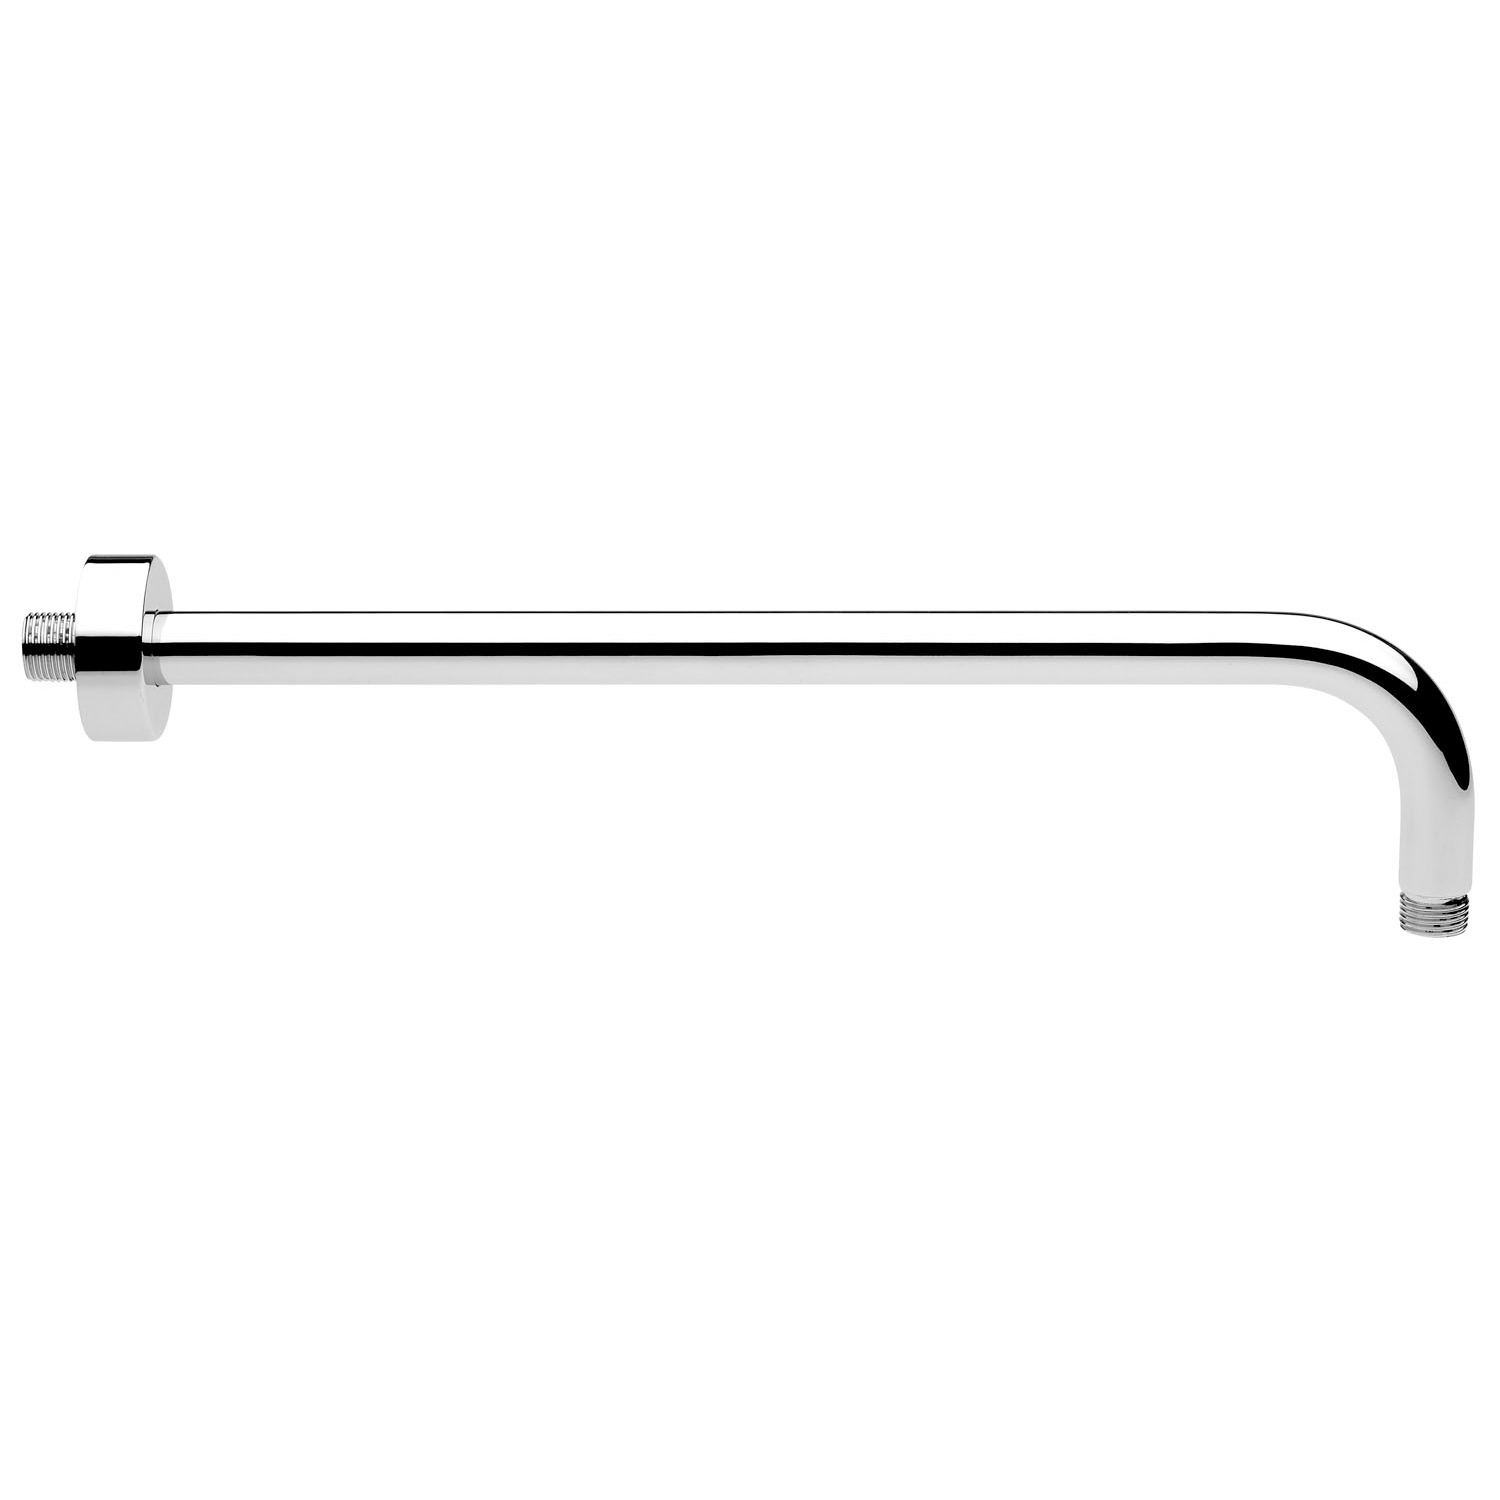 Verona Sash Concealed 2-Way Shower Valve Single Handle with Diverter Pack 1 - Polished Chrome